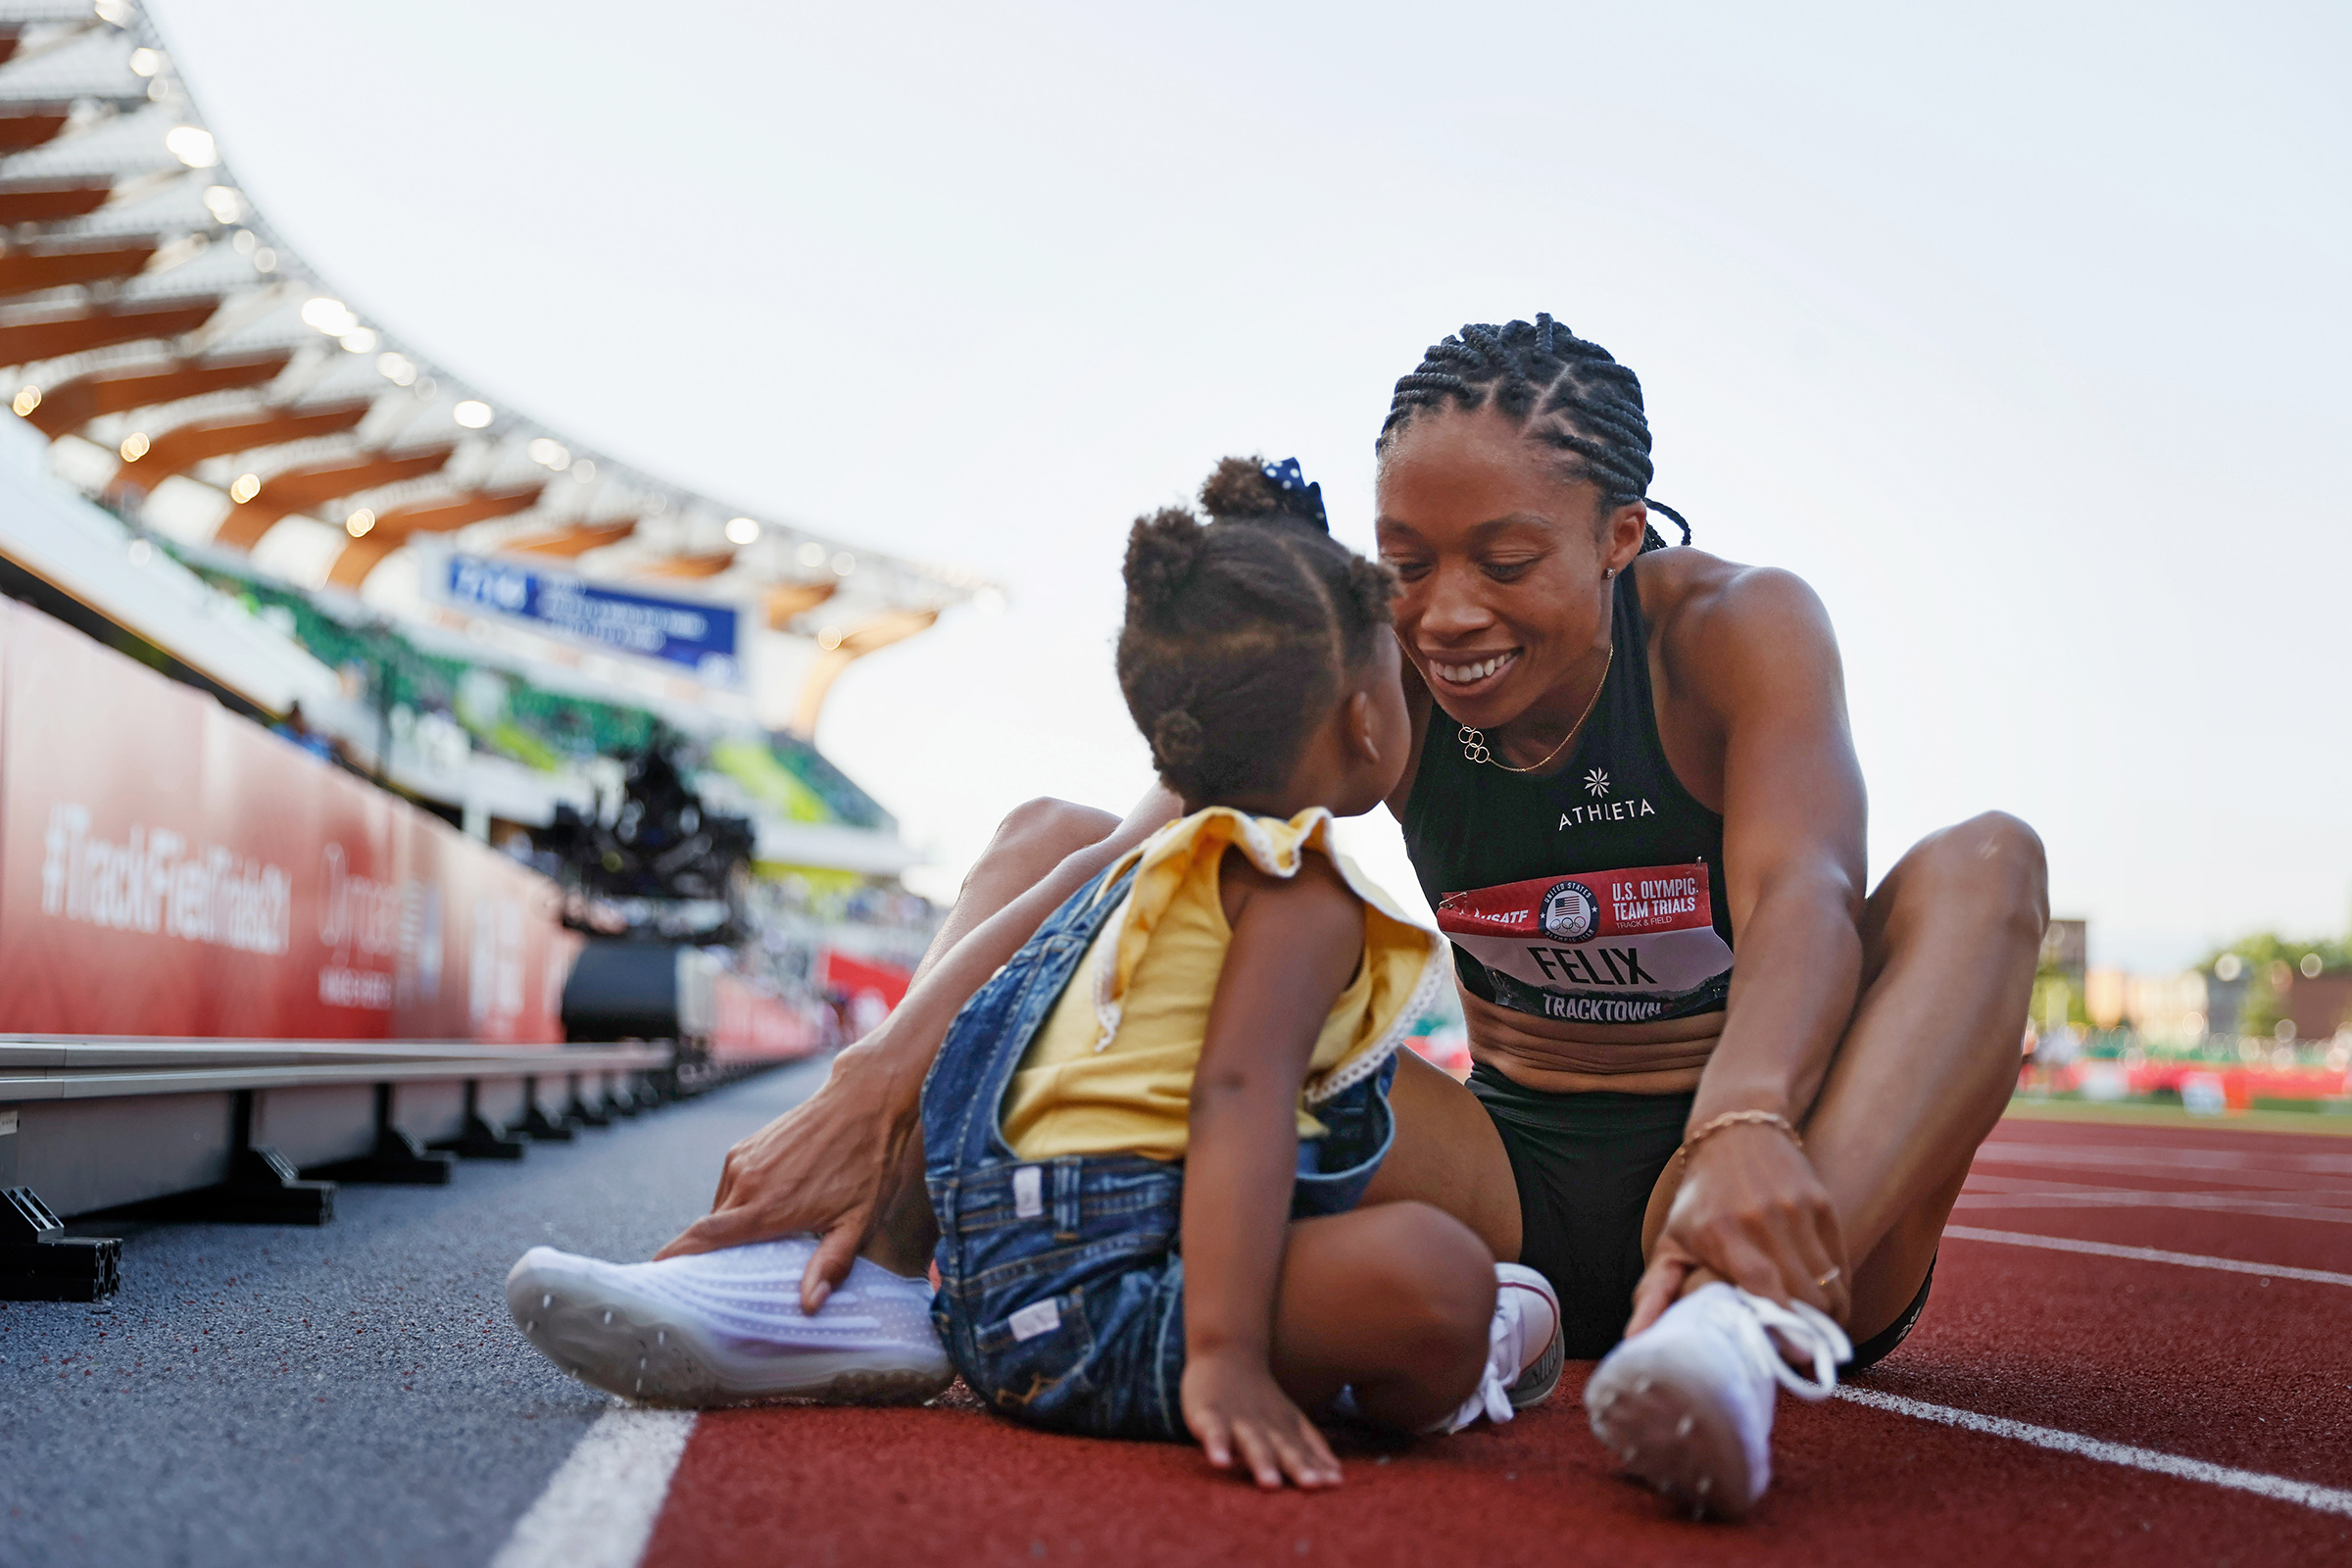 Felix with daughter Camryn at the U.S. track-and-field trials